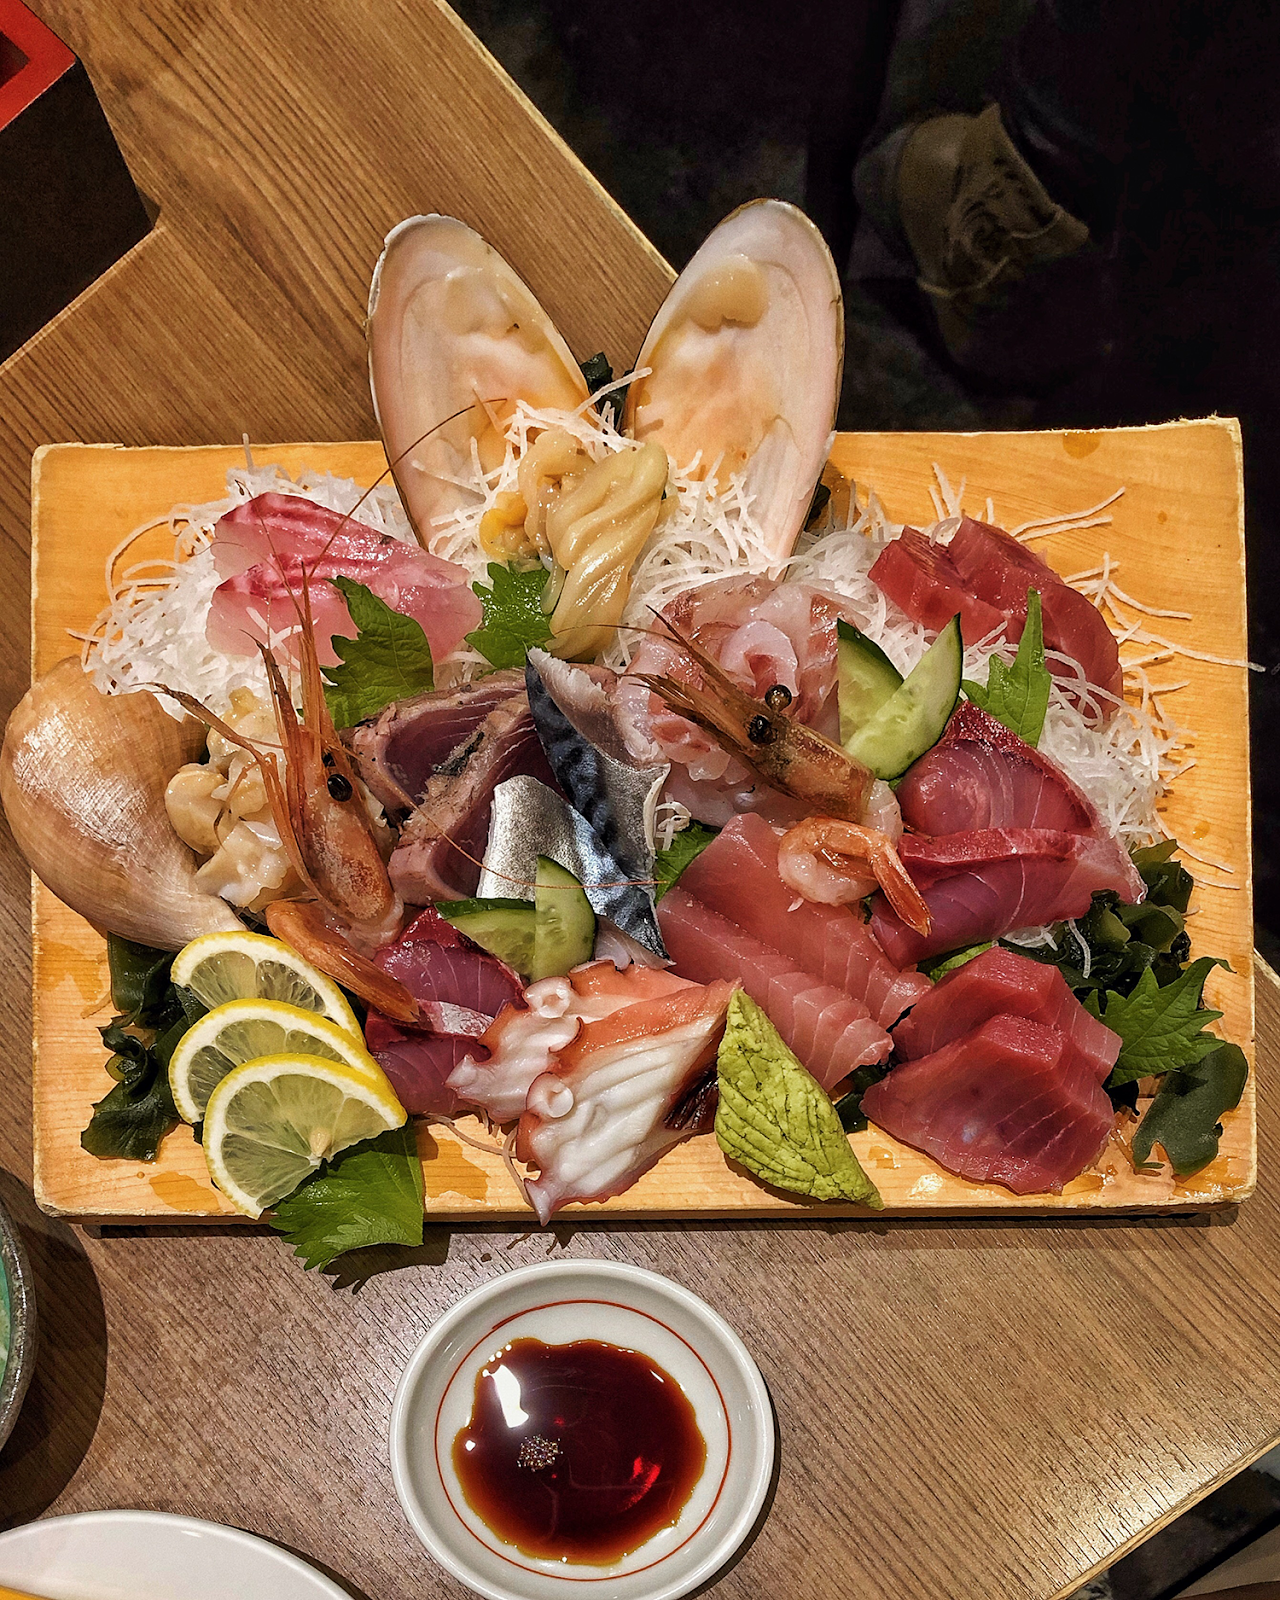 Kanazawa eats, Japan fresh seafood, Kanazawa sashimi platter, Kanazawa trip from Tokyo, must-visit cities in Japan, Nishi Chaya District, Higashi Chaya District, photogenic and charming towns in Japan - FOREVERVANNY